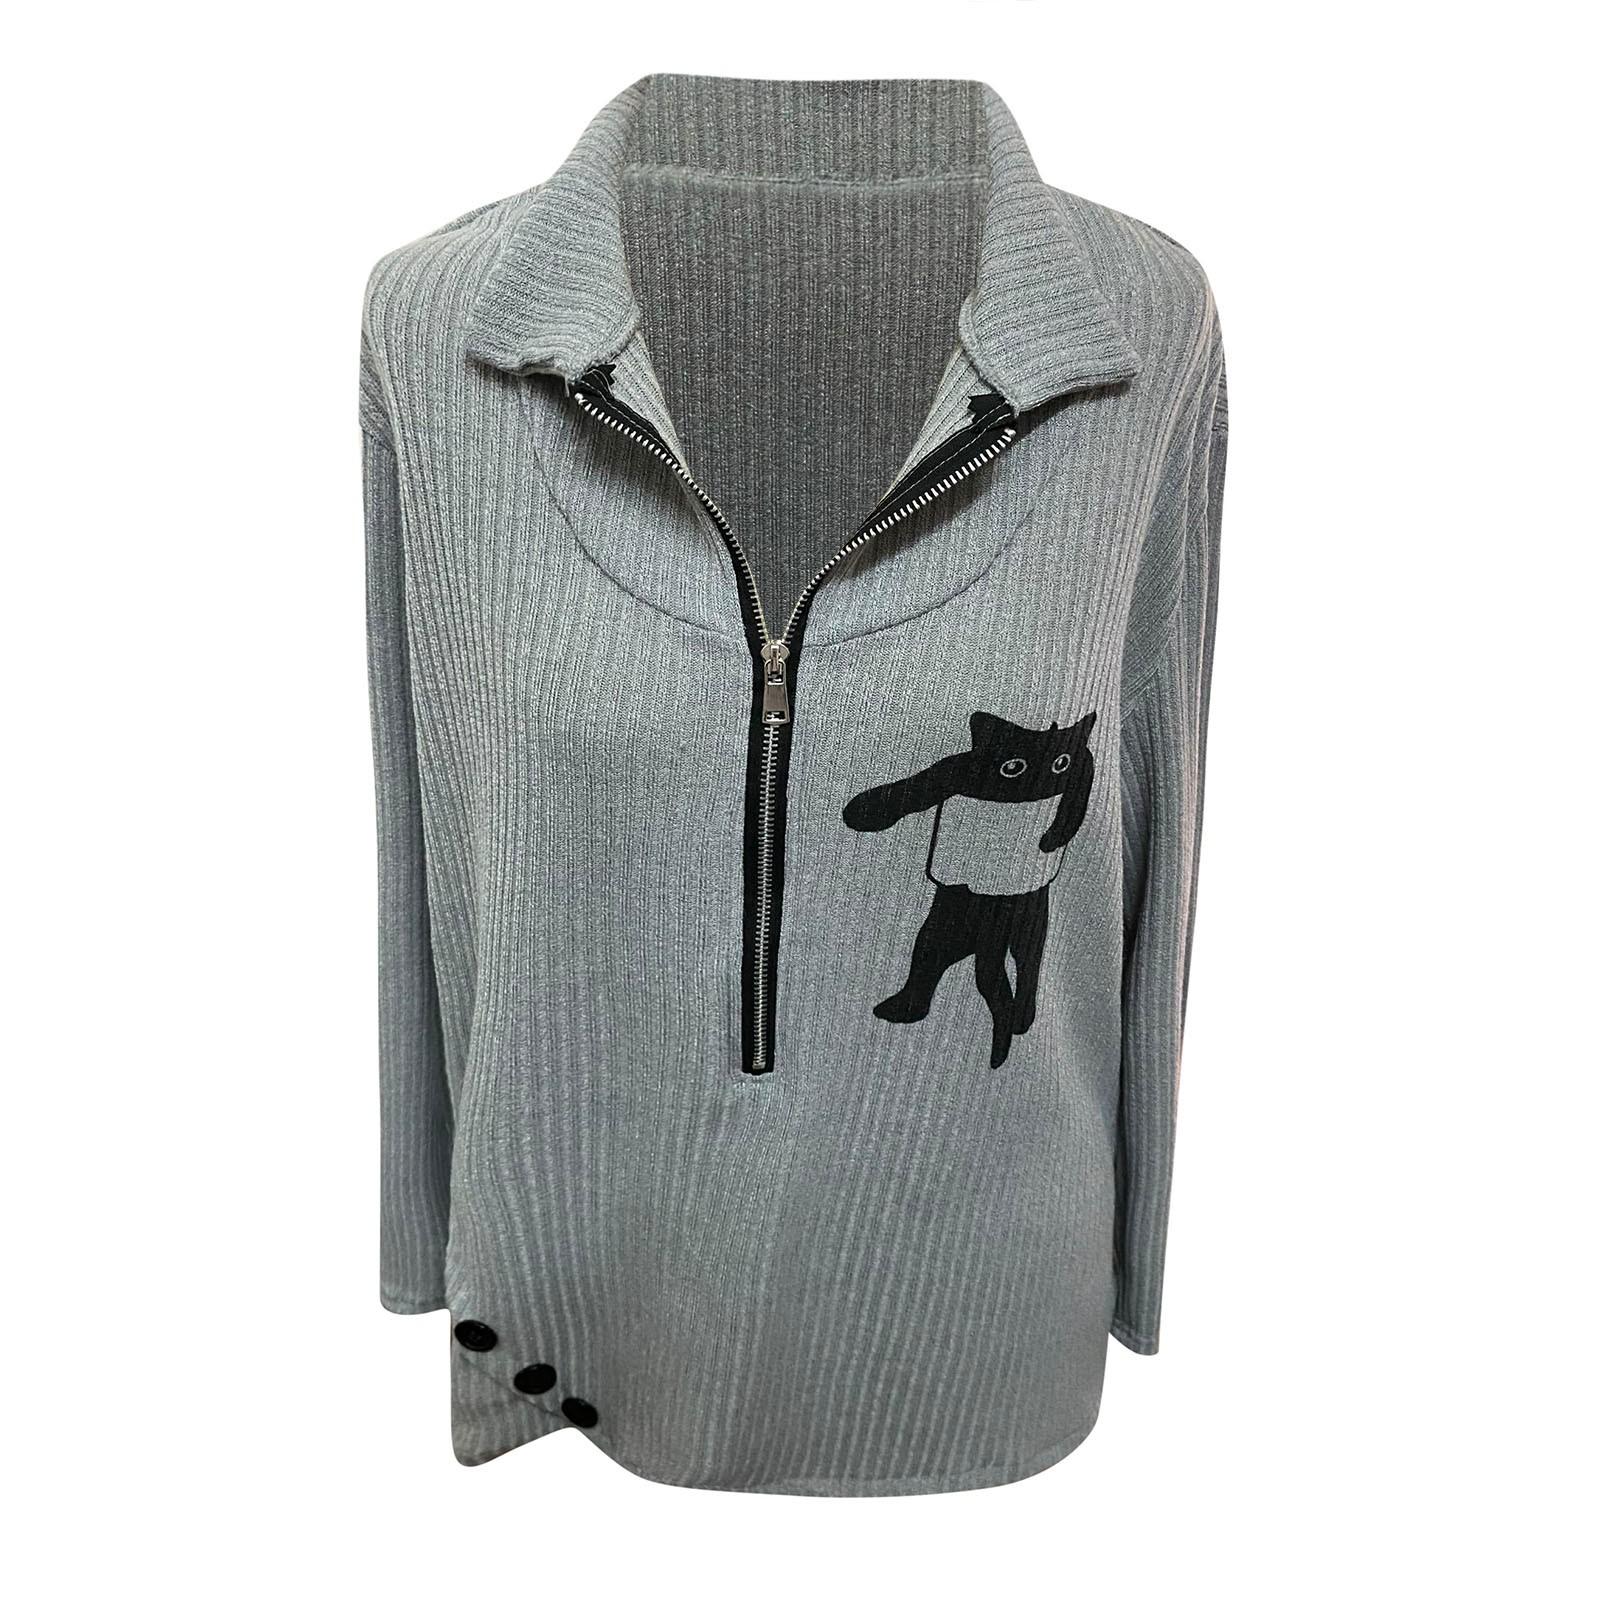 4# Woman Sweaters 2020 Fashion High end Autumn New Products Lapel Cat Zipper Long sleeved Sweater Женские Свитера Sweaters